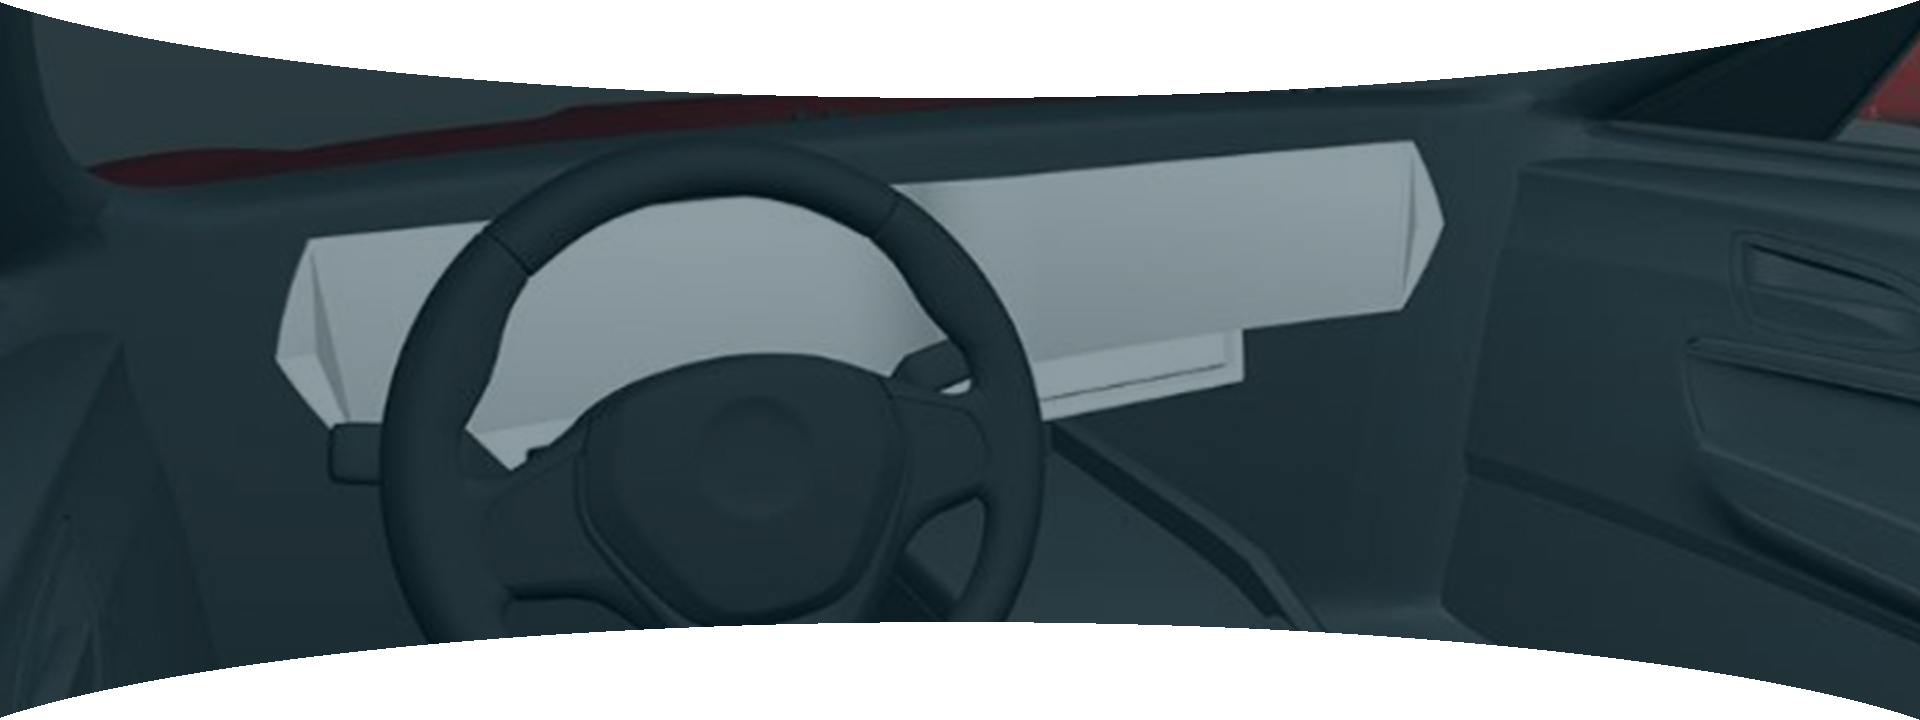 placeholder-interrior-cockpit-rotation-instrument-clusters